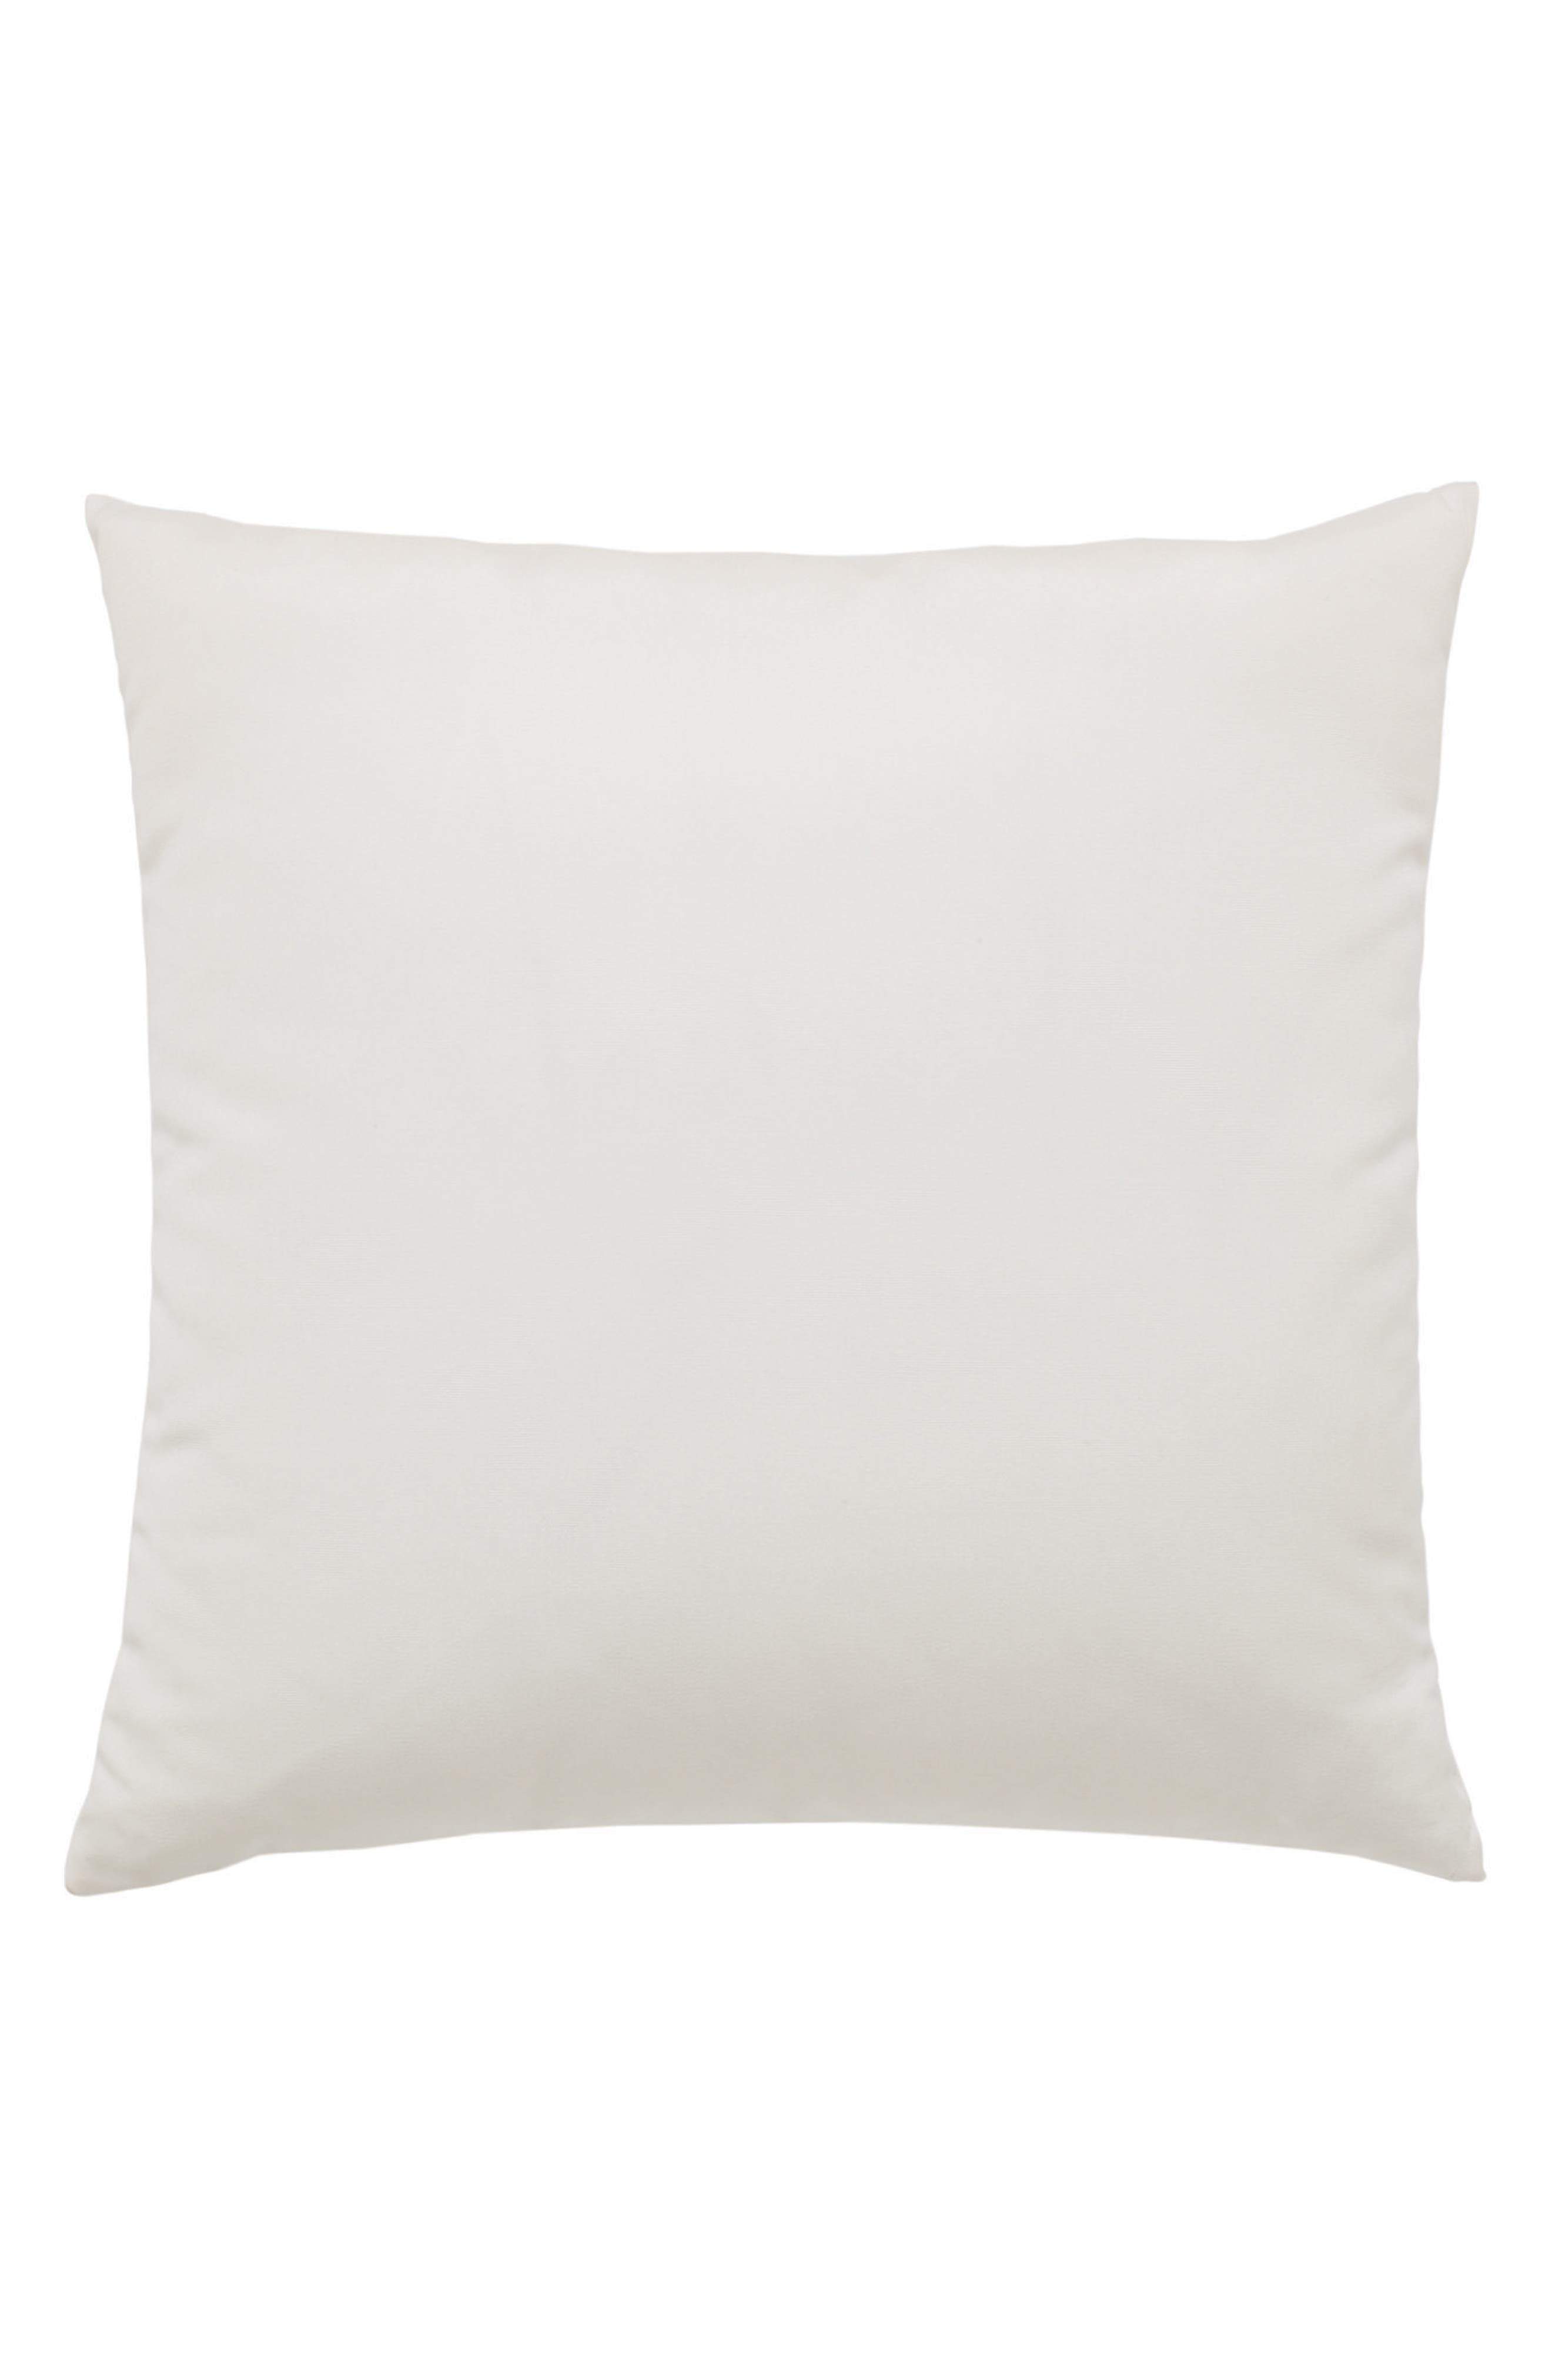 Leaf Lagoon Indoor/Outdoor Accent Pillow,                             Alternate thumbnail 2, color,                             100